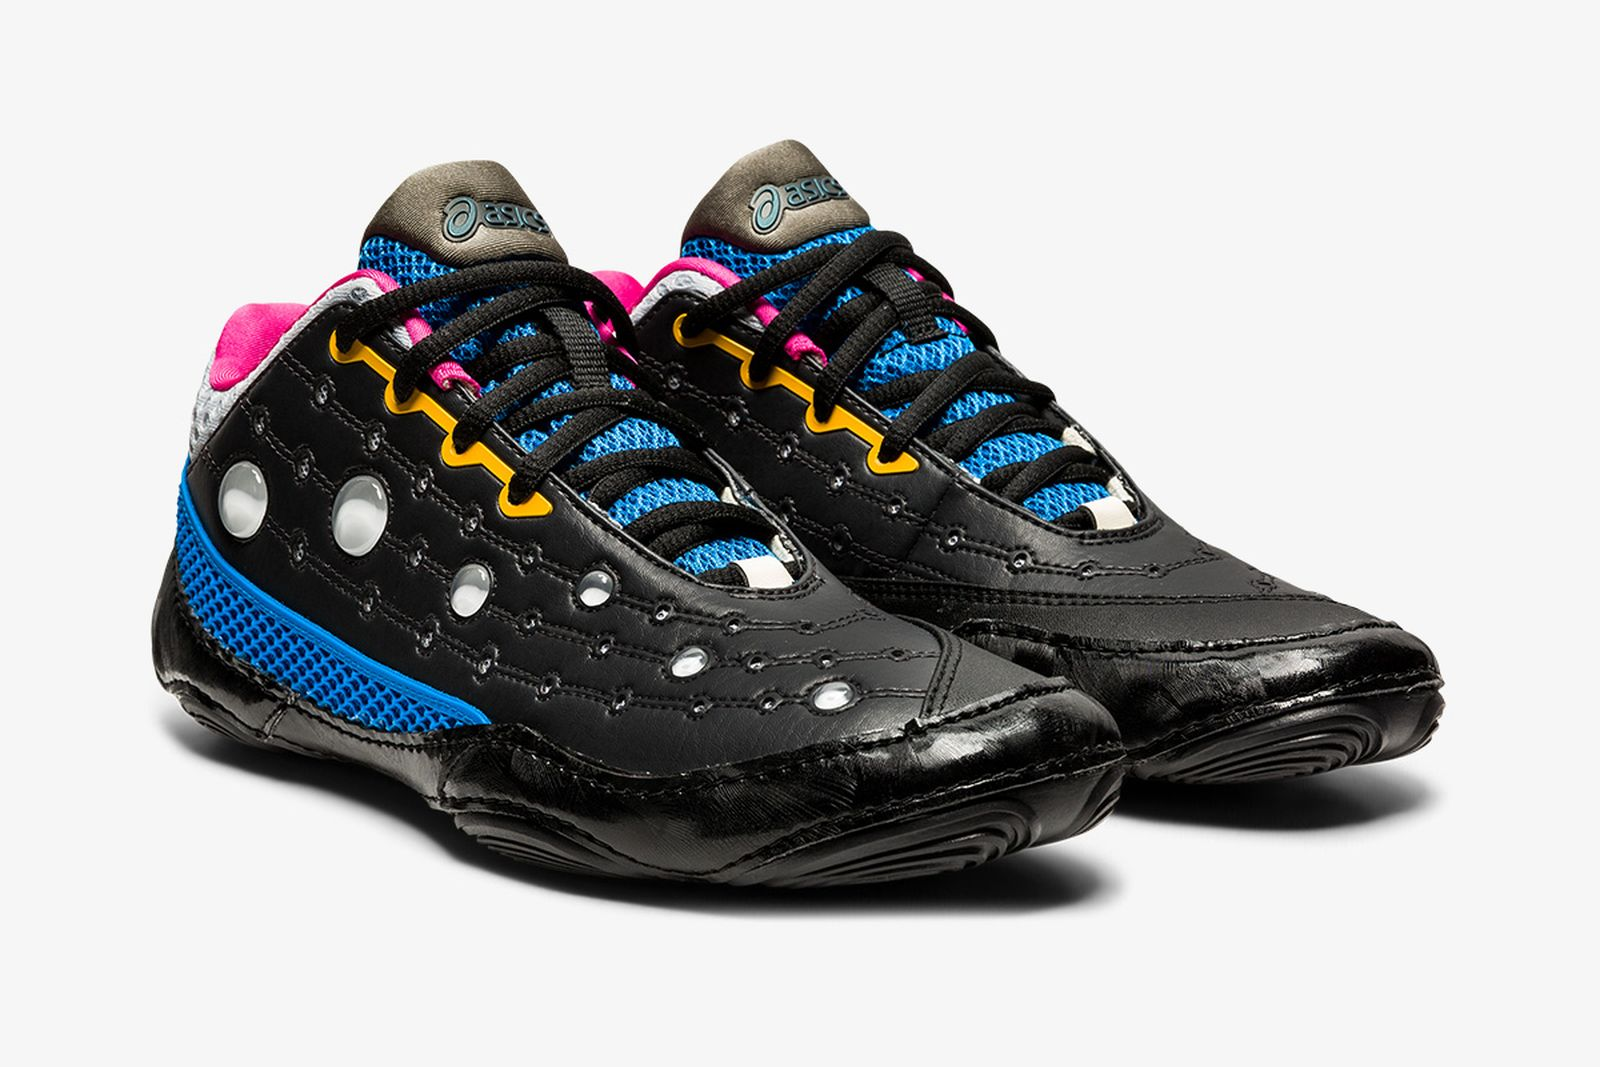 kiko kostadinov and asics gesserit 2 sneaker in black and blue